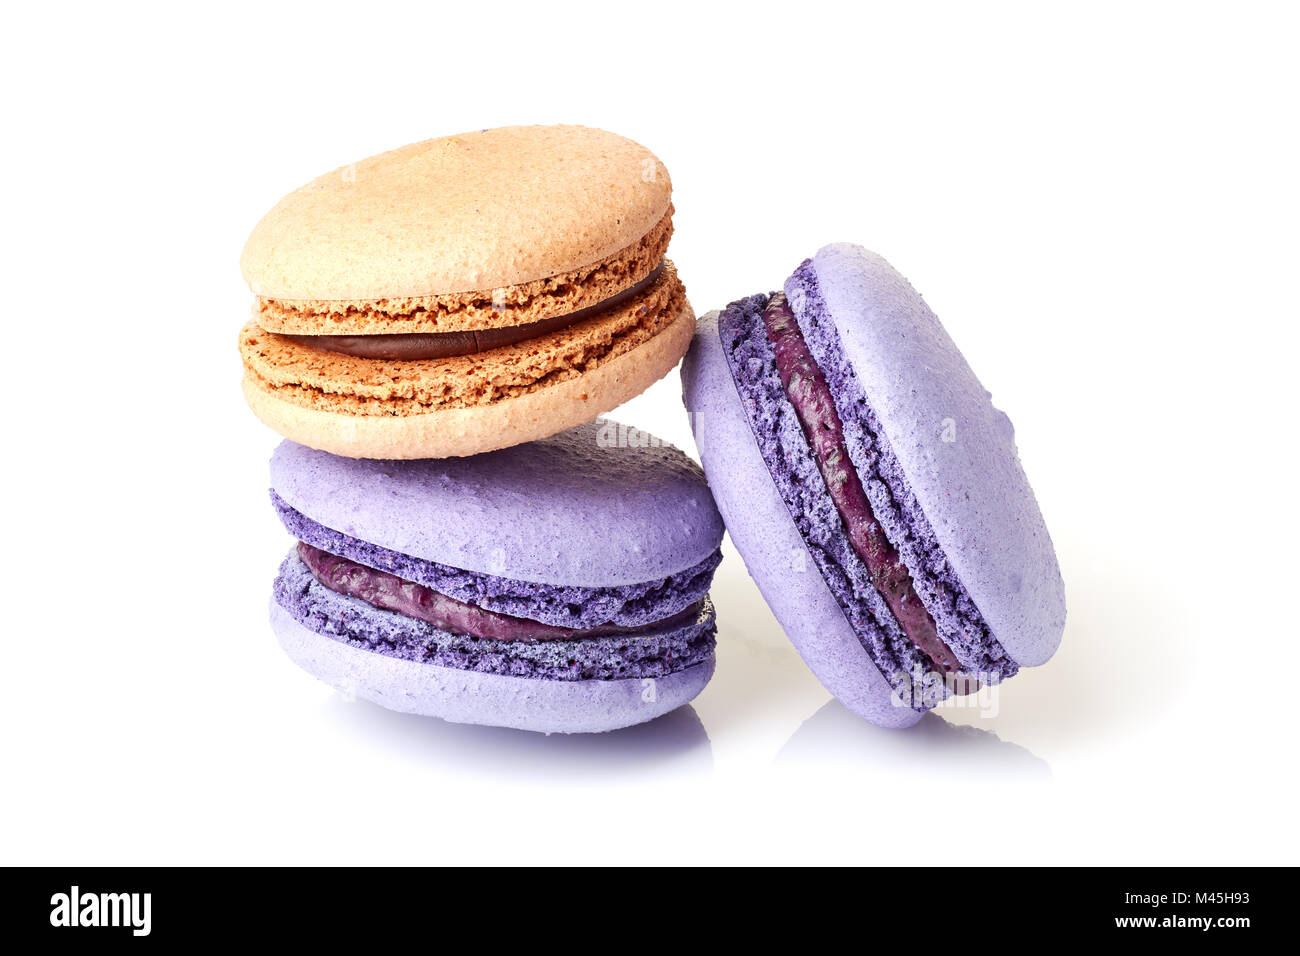 Violet and beige macarons on white - Stock Image